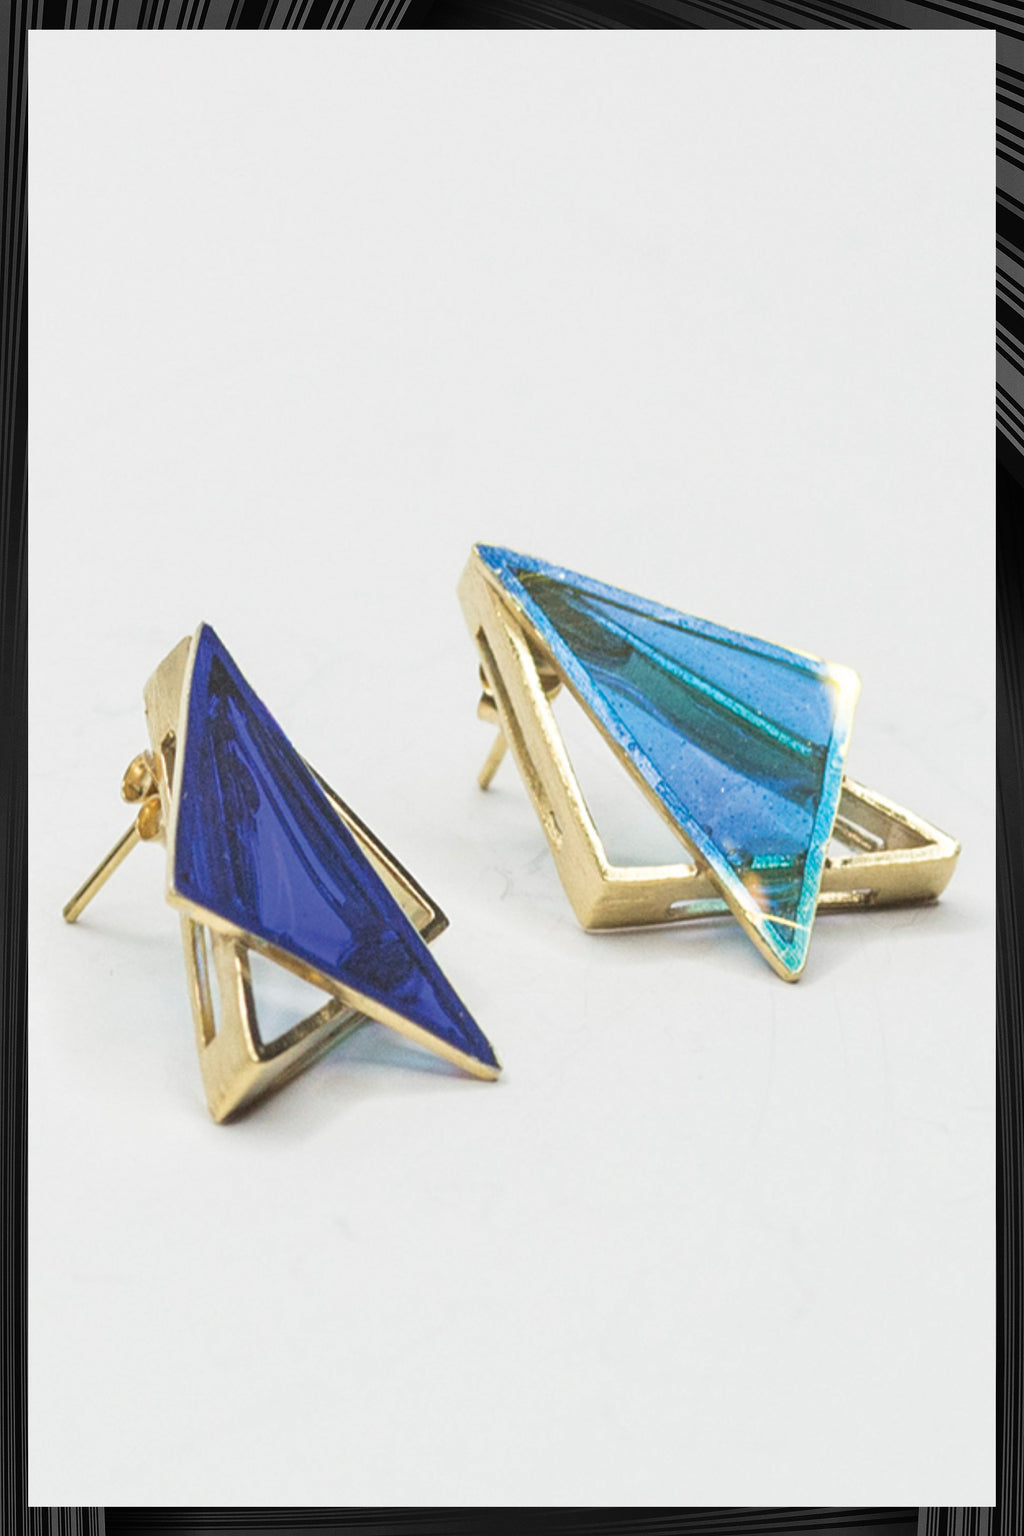 Swinton Earrings | Free Delivery - 2-3 Week Shipping